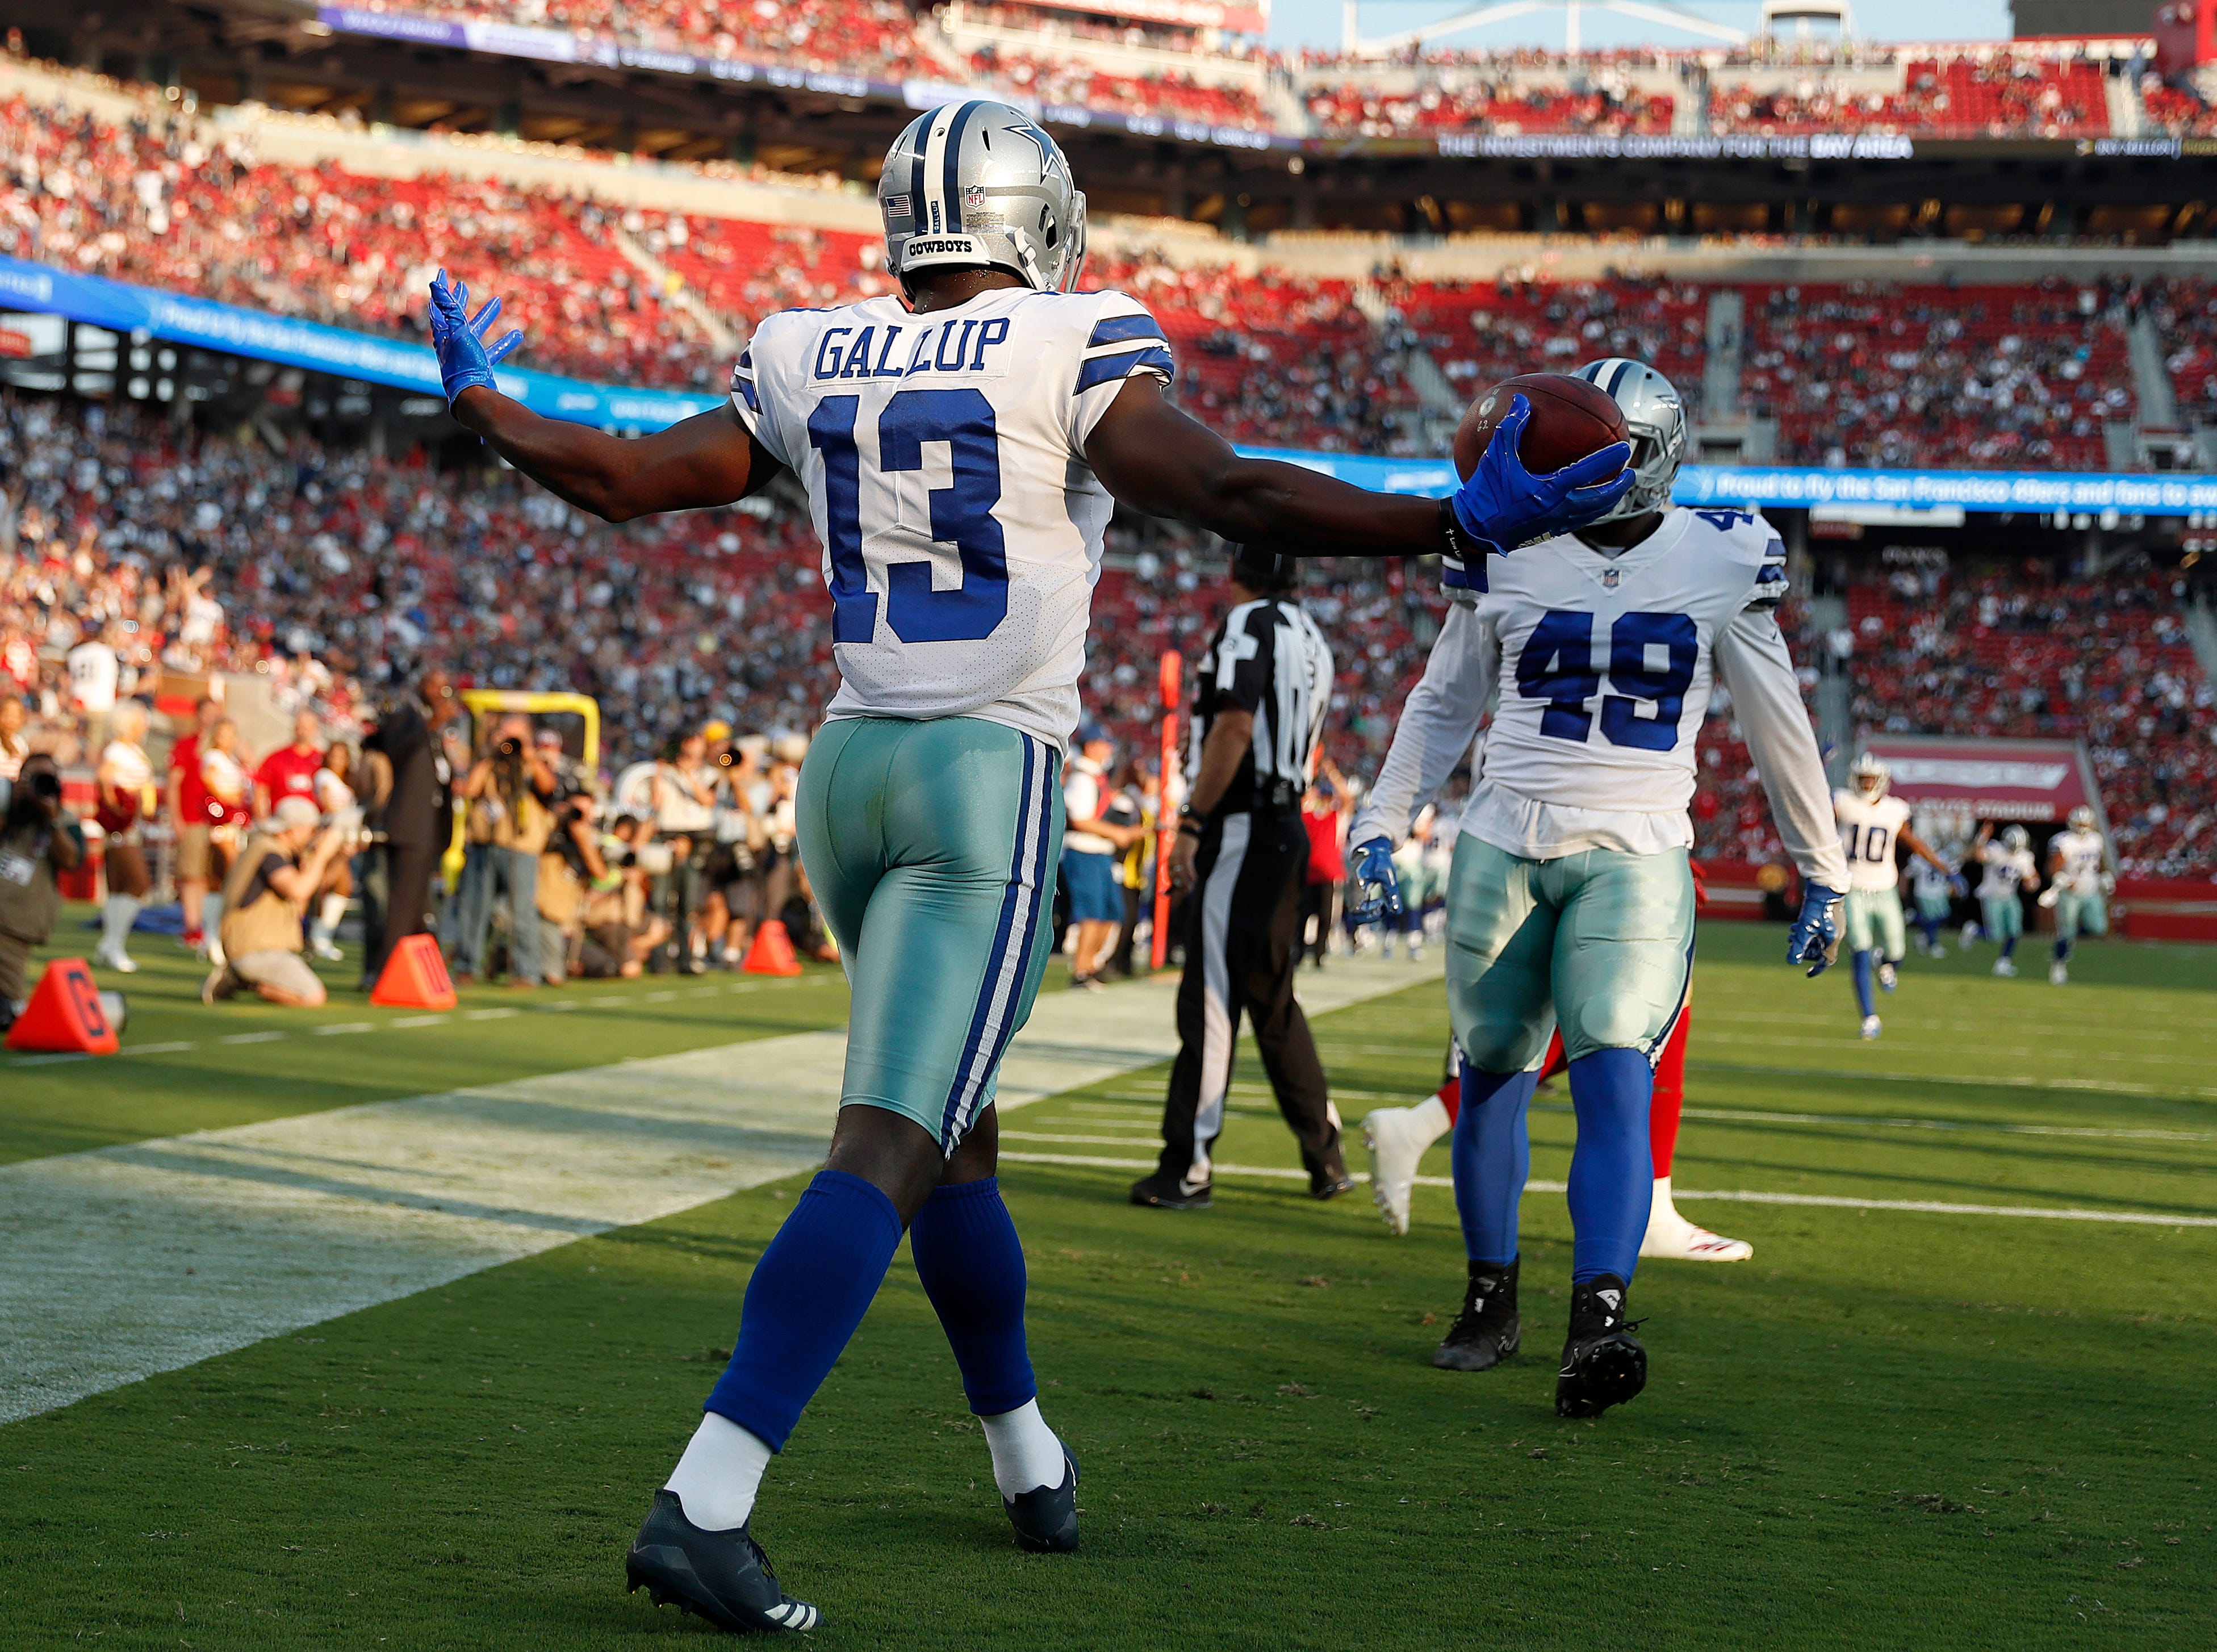 Dallas Cowboys wide receiver Michael Gallup (13) celebrates after scoring a touchdown against the San Francisco 49ers during the first half of an NFL preseason football game in Santa Clara, Calif., Thursday, Aug. 9, 2018. (AP Photo/Tony Avelar)